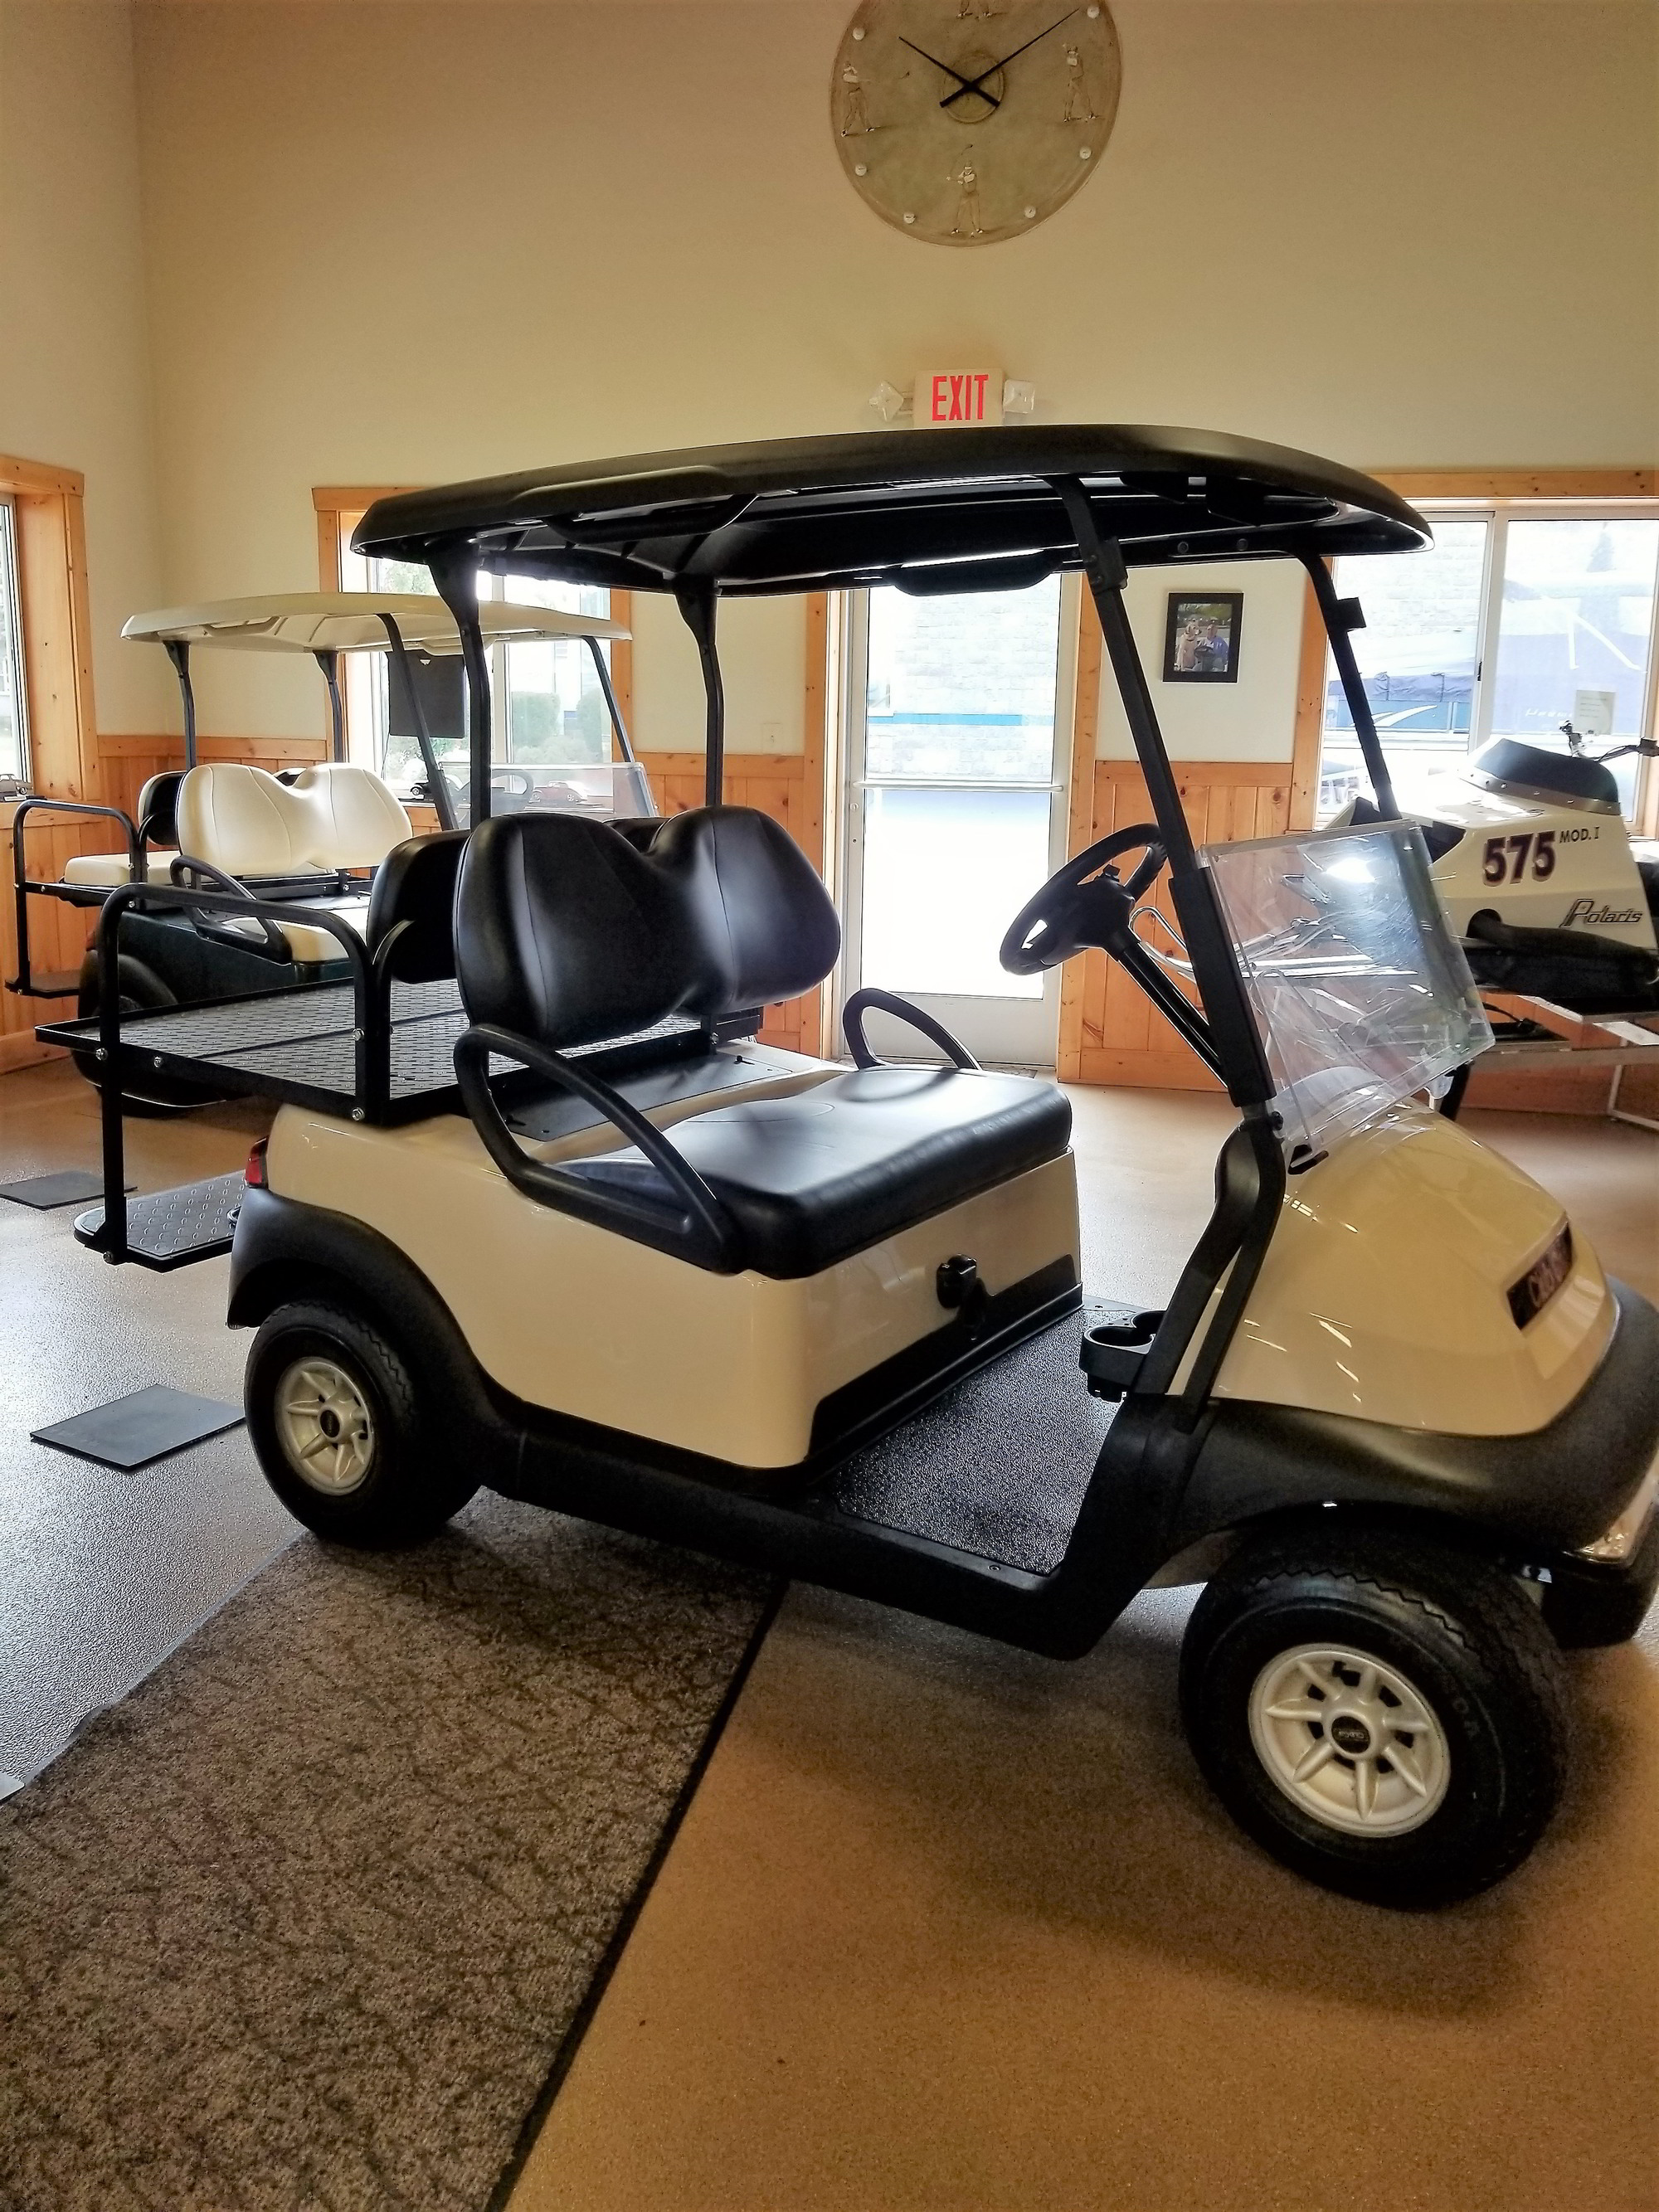 Beige 4 Passenger Cart for sale in Wisconsin by Brown's Service